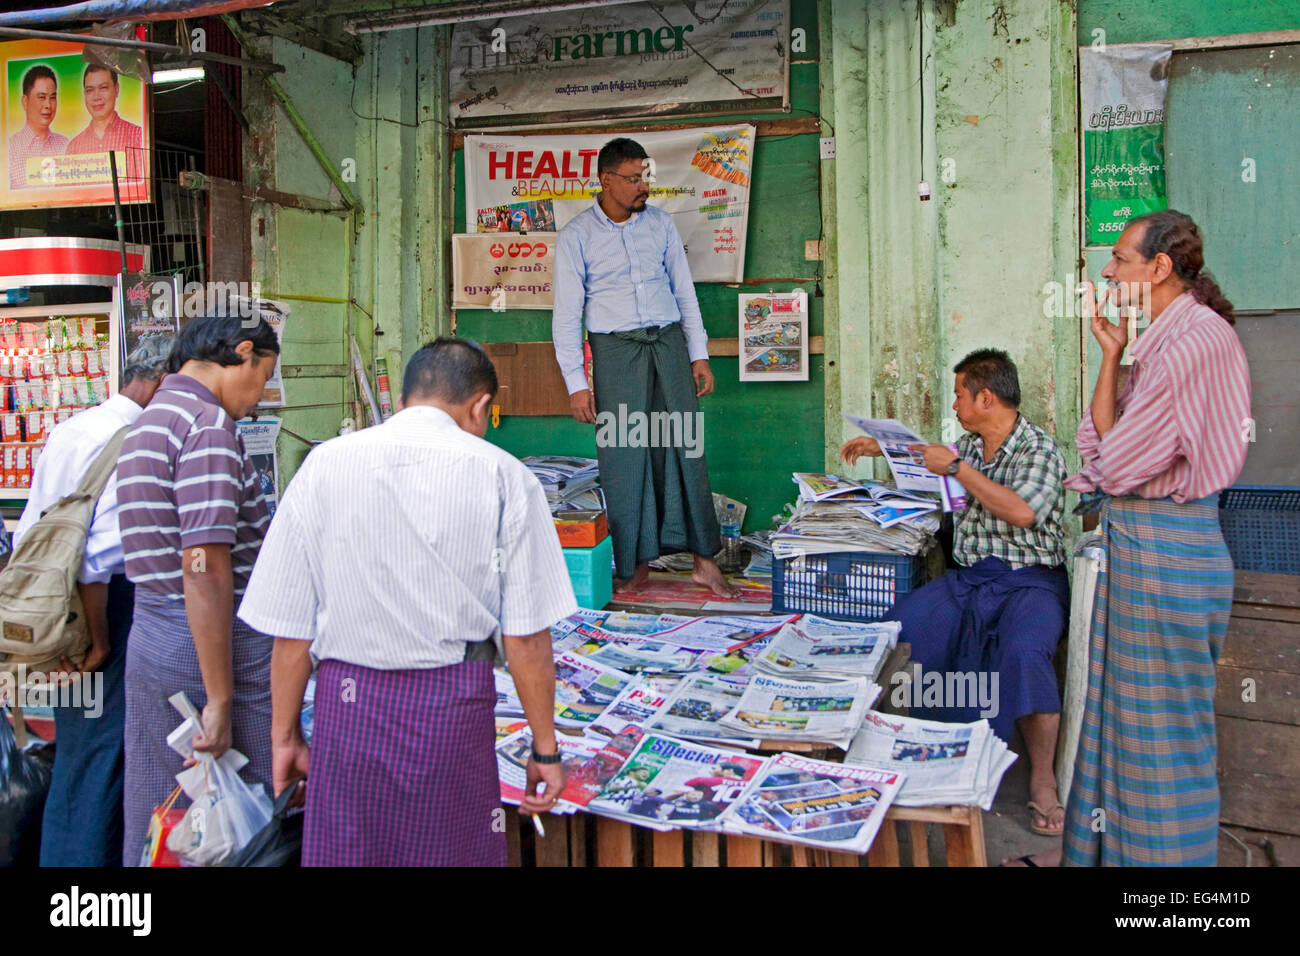 Burmese men buying daily newspapers and journals at street stall in Yangon / Rangoon, former capital city of  Myanmar Stock Photo